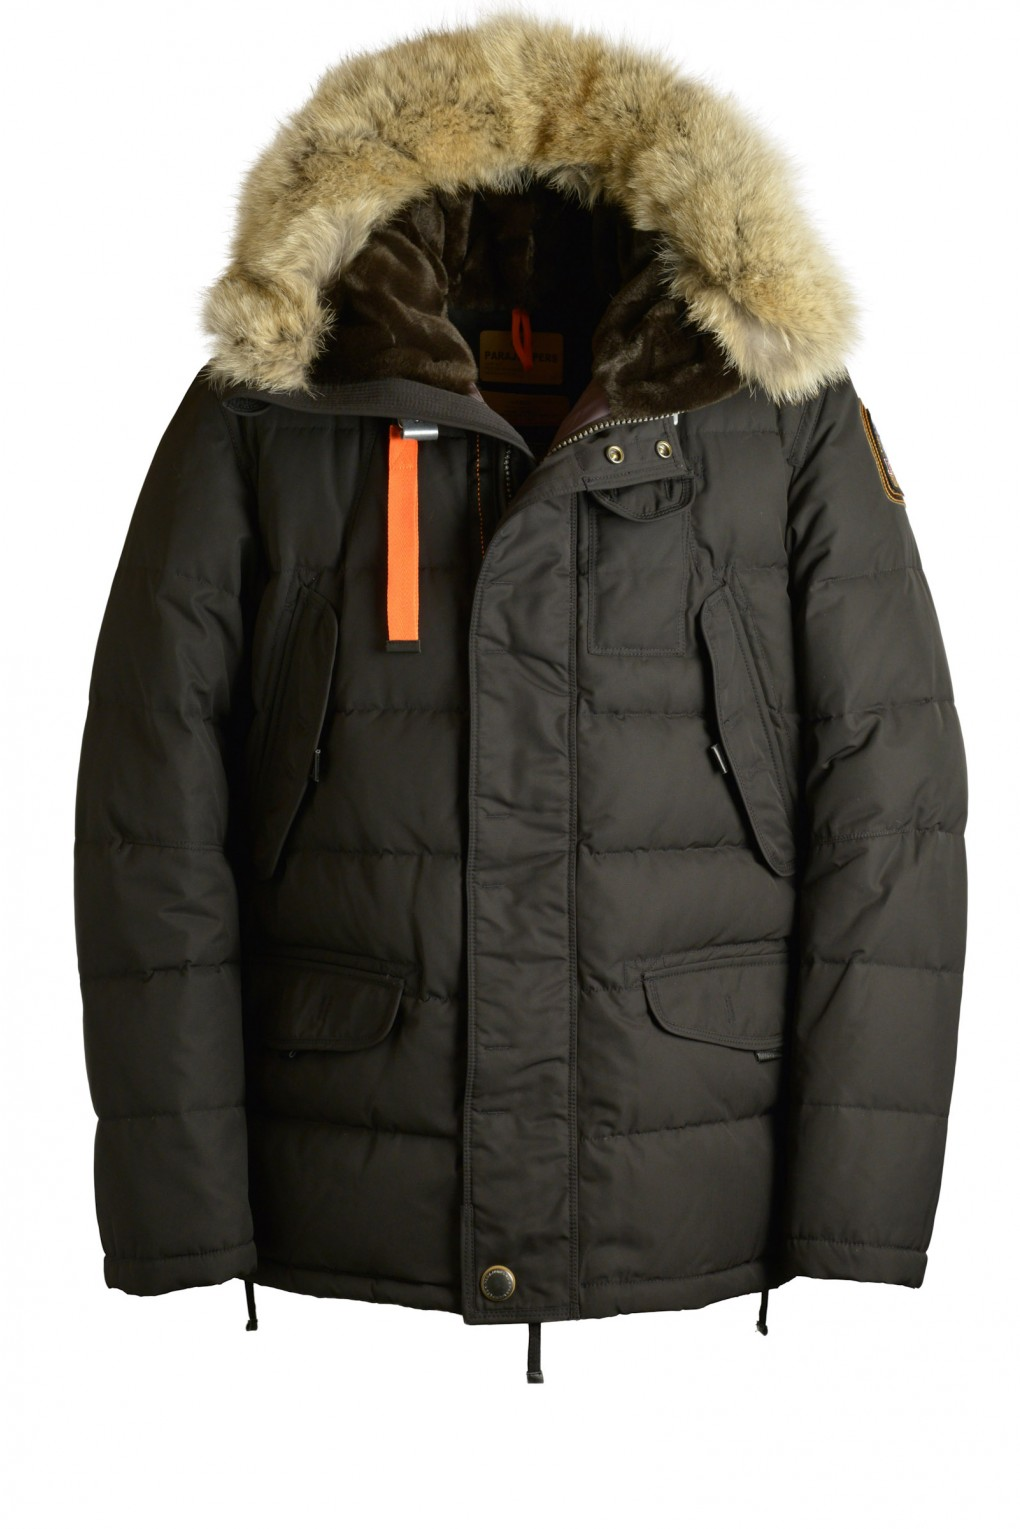 parajumpers DEER man outerwear Black